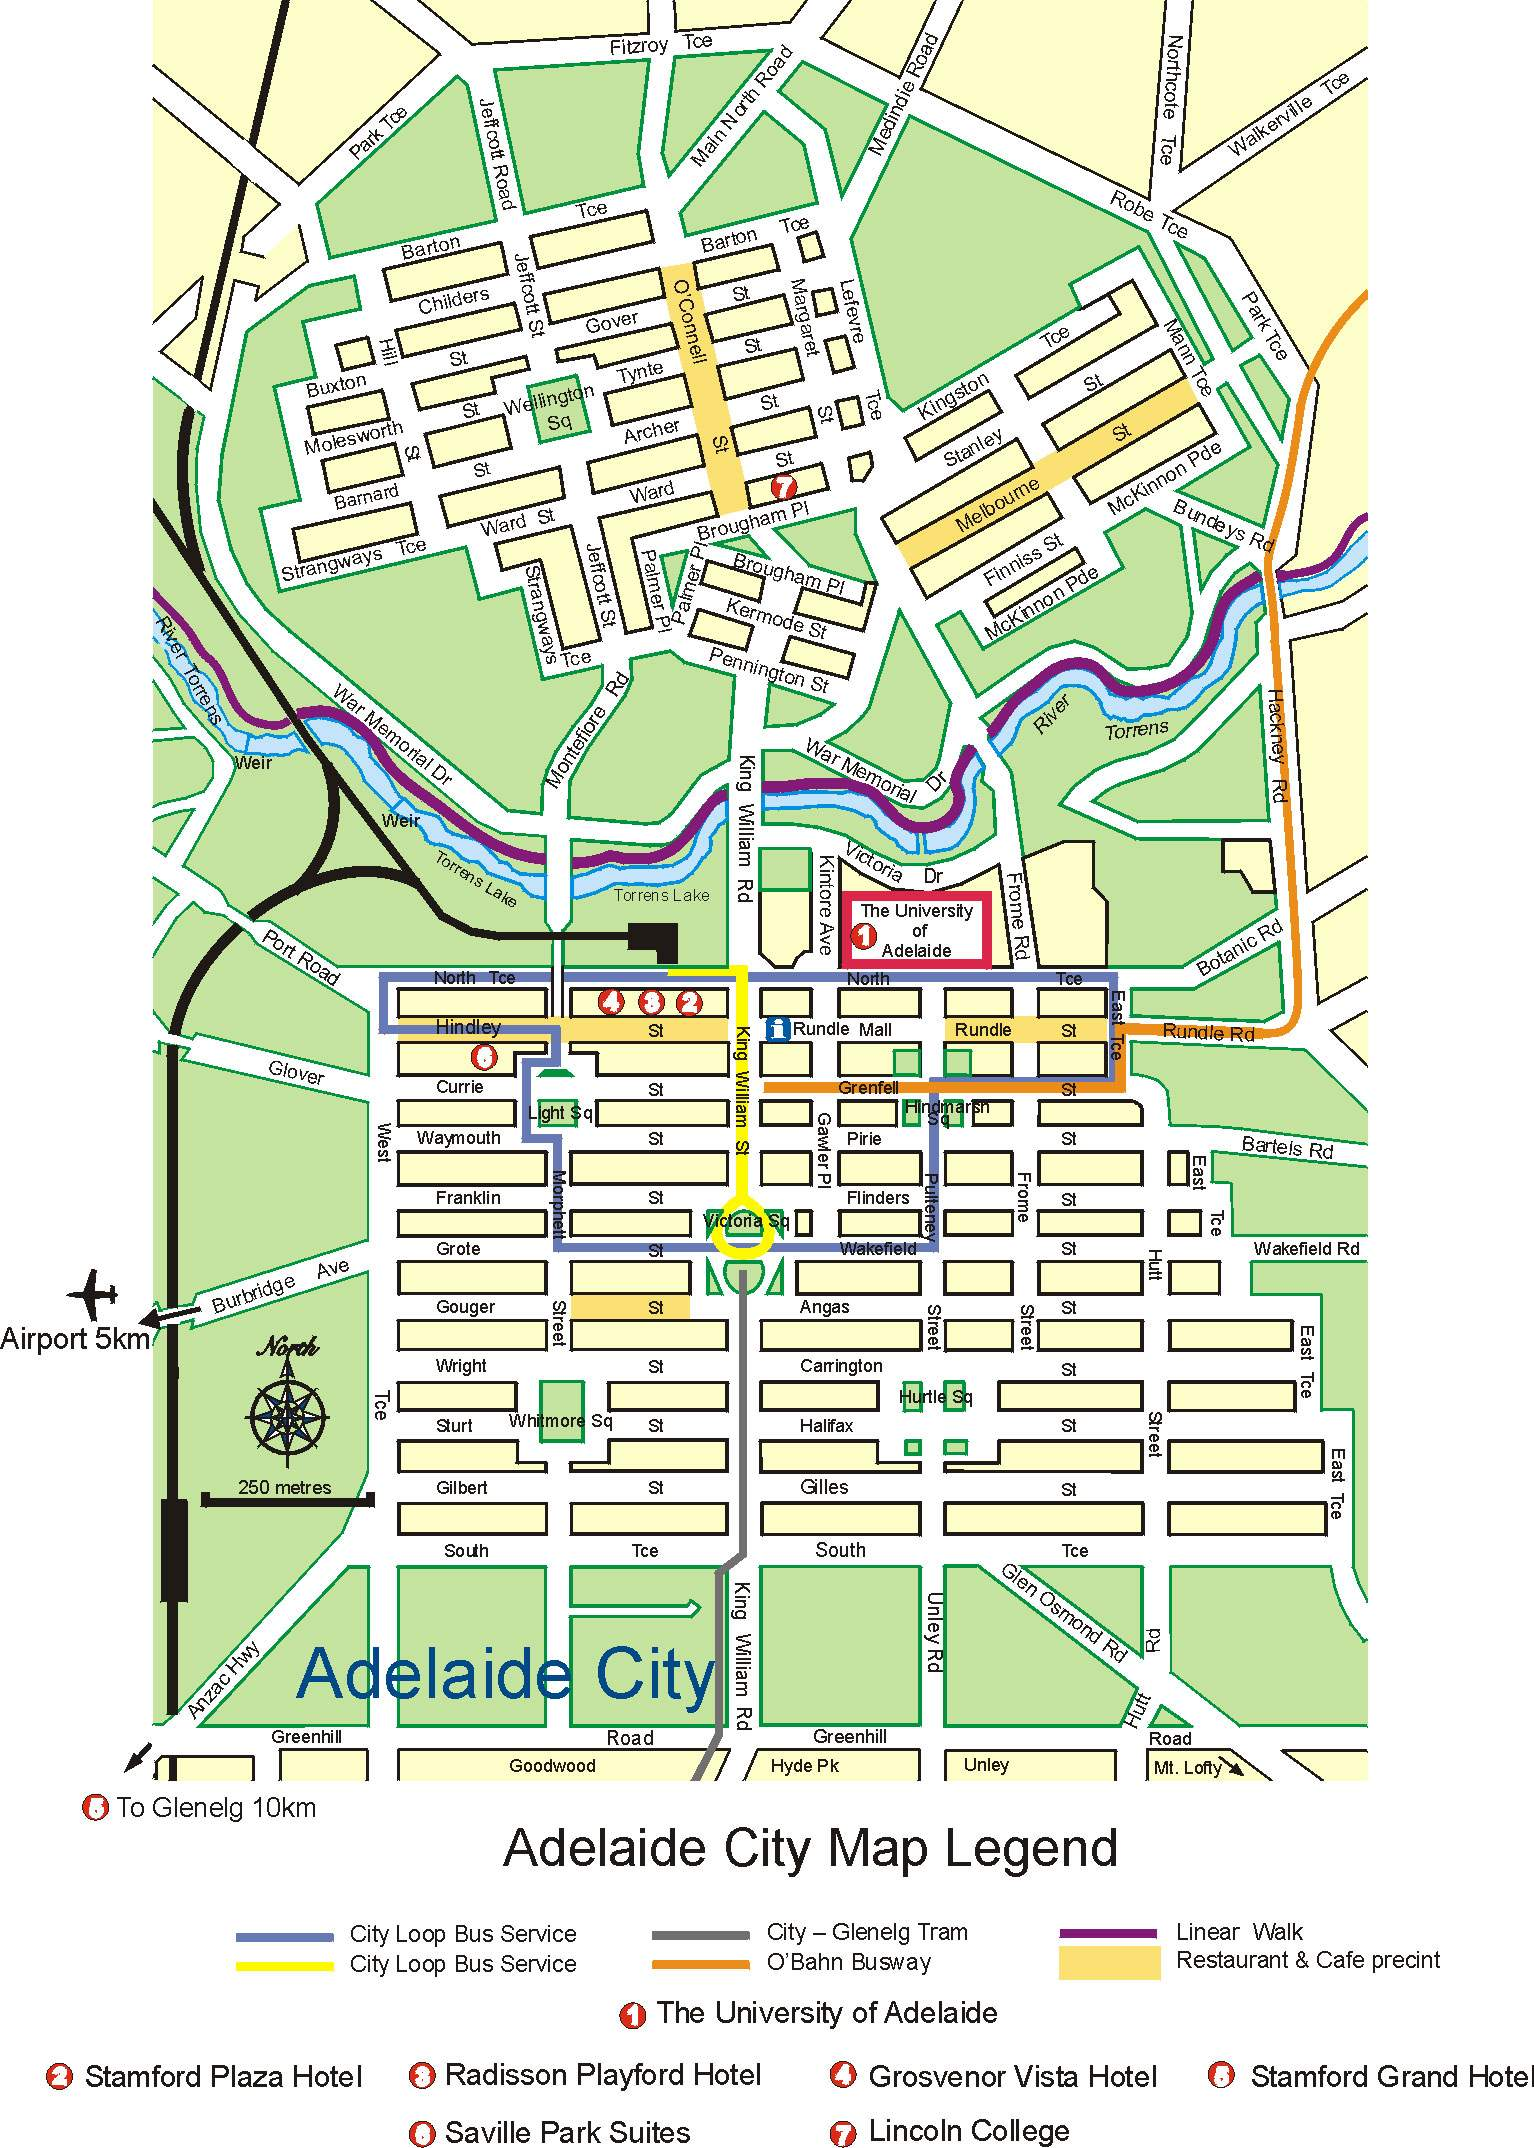 「adelaide city map」的圖片搜尋結果